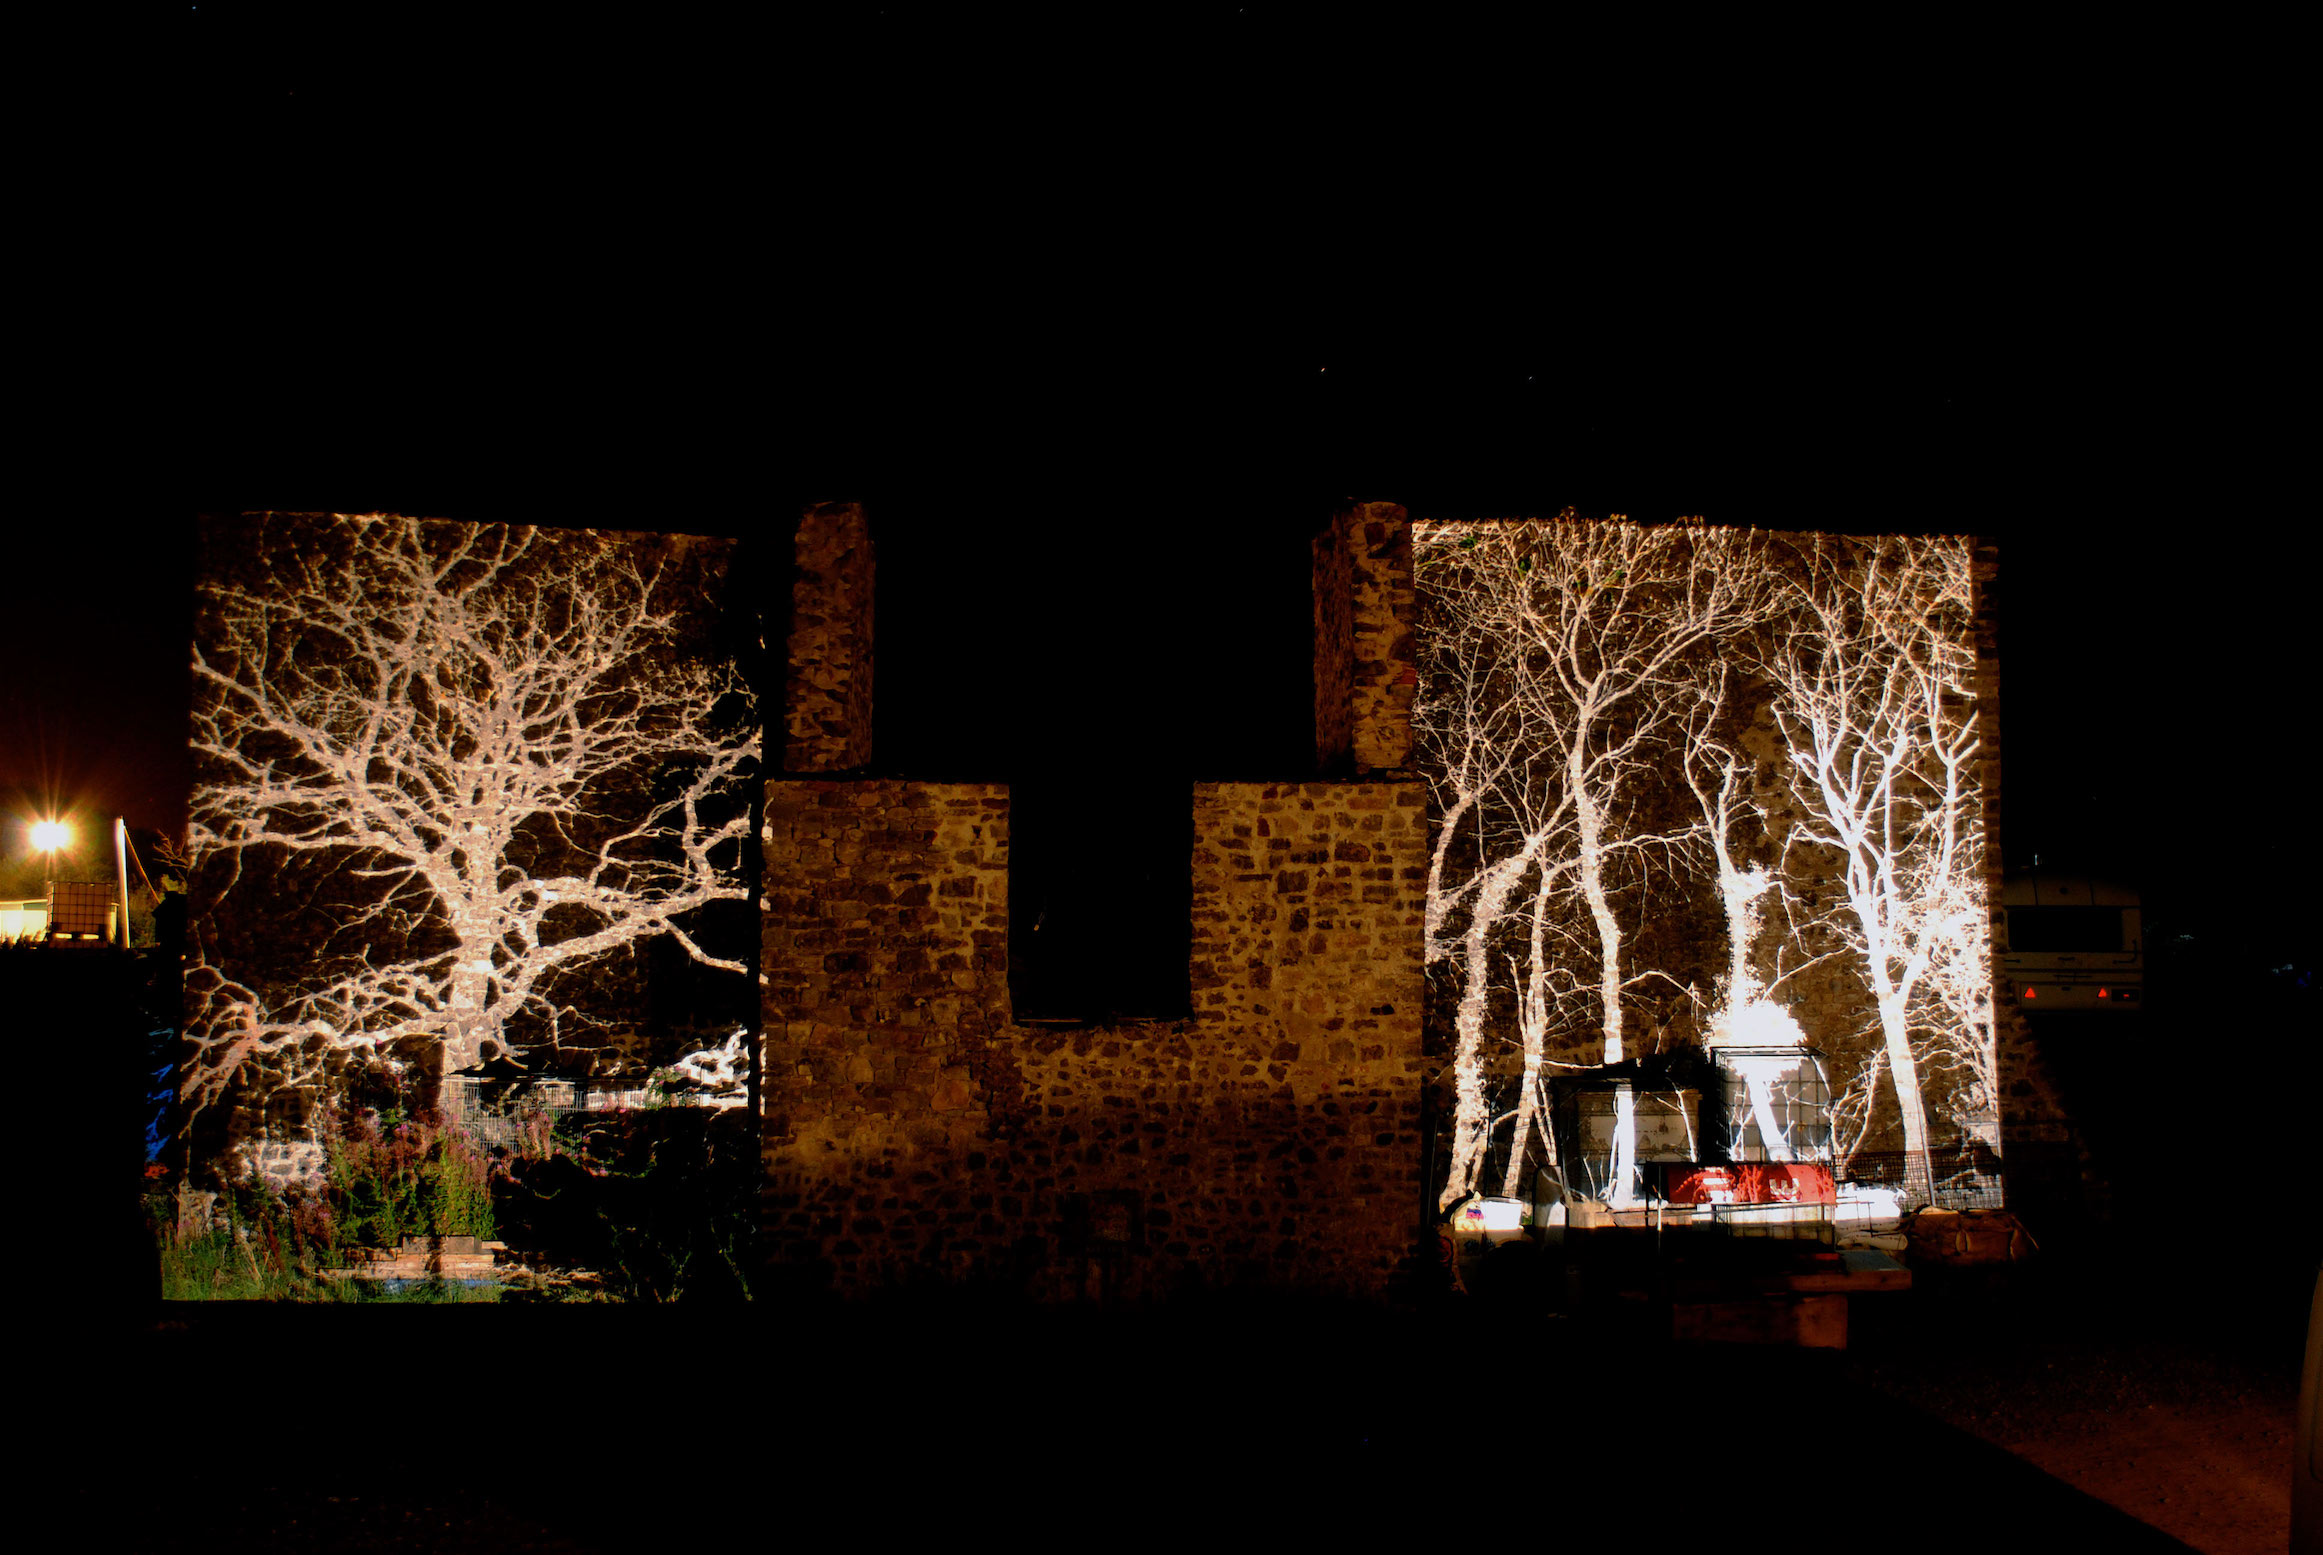 exterior-lighting-and-projection-i_6441128915_o.jpg